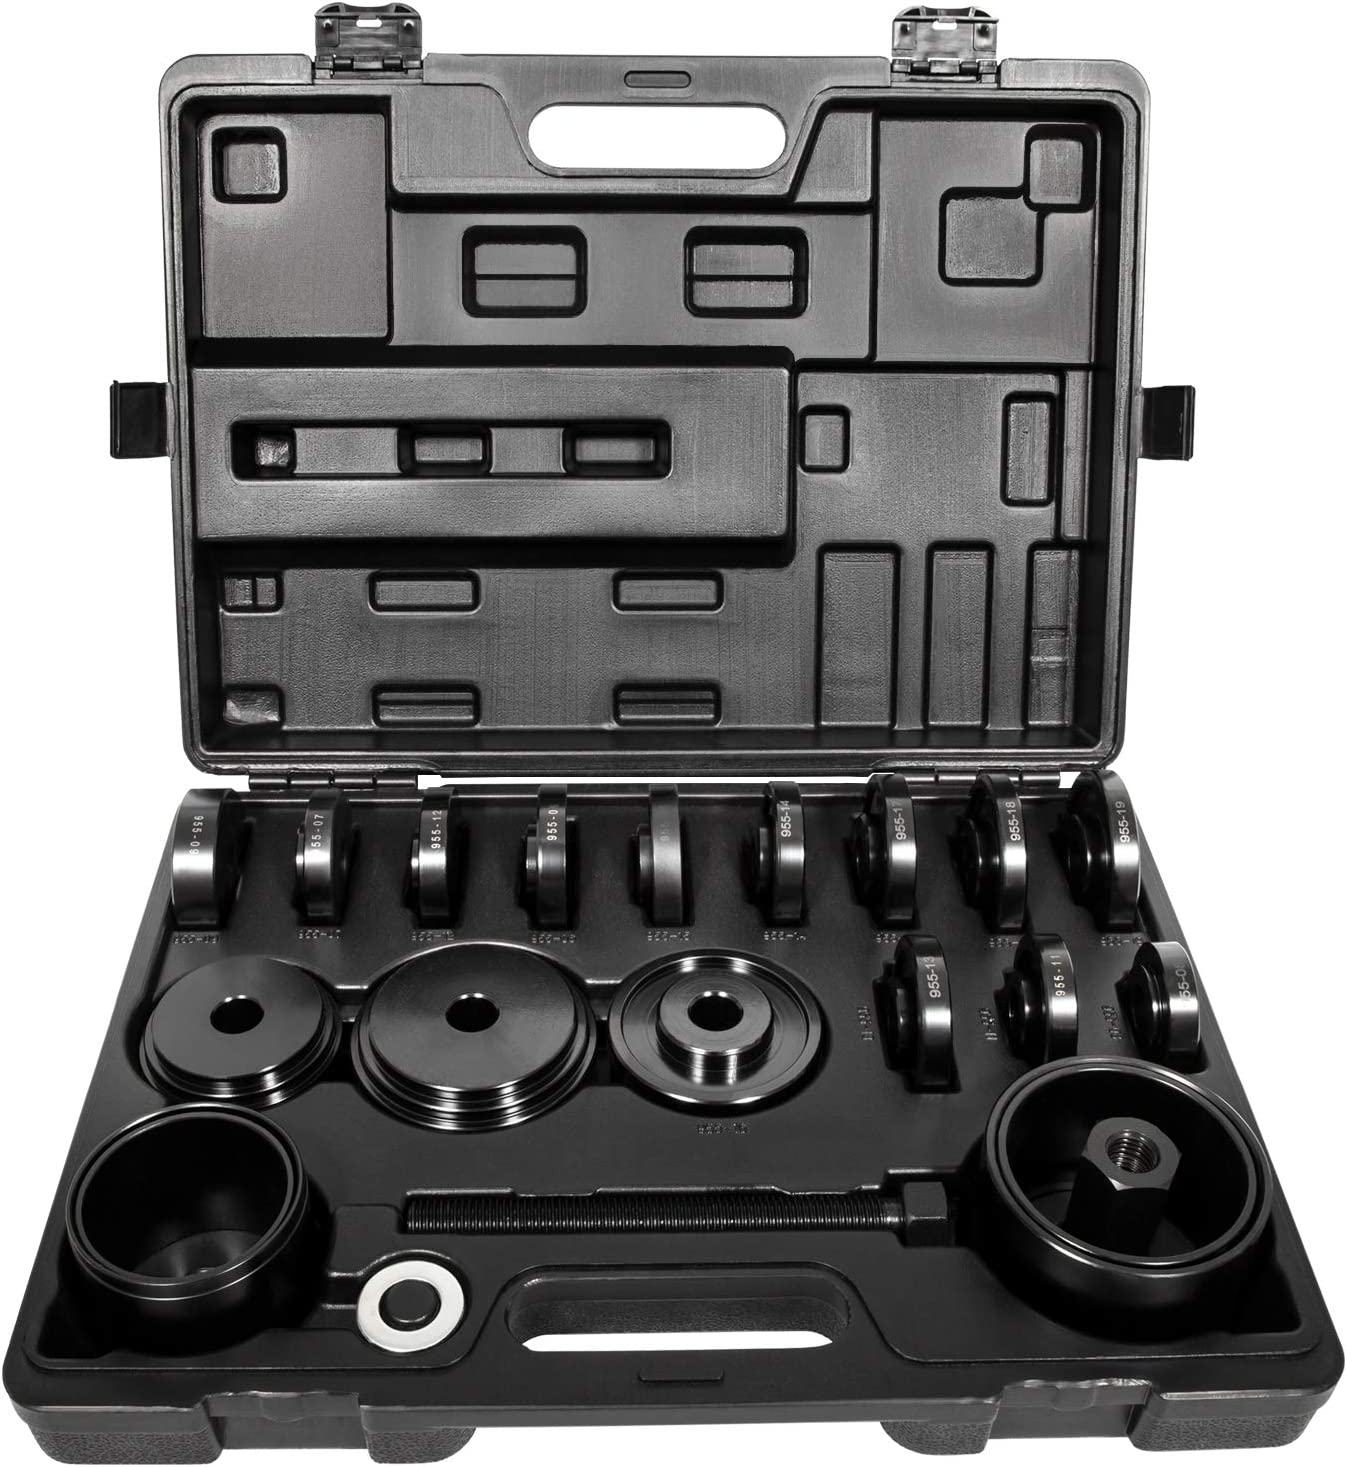 Sunluway 23 PCS FWD Front Wheel Drive Bearing Adapters Puller Press Replacement Installer Removal Tool Kit with Black Case